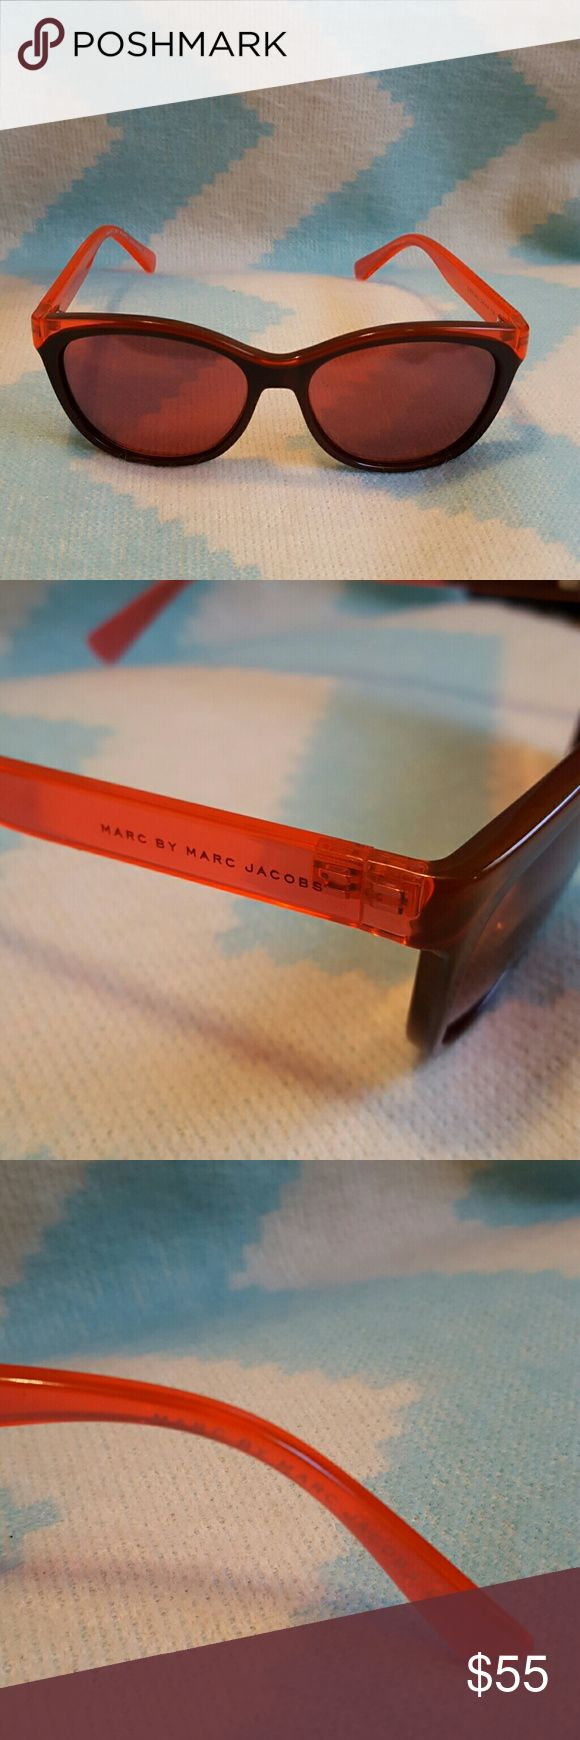 Marc by Marc Jacobs sunglasses Pre loved Marc Jacobs sunglasess. Perfect for completing a designer look. Sunglasses have a little scratch, barely noticeable as seen in last pic. Only seruous offers please these were very expensive as they are from the marc collection. Marc by Marc Jacobs Accessories Sunglasses